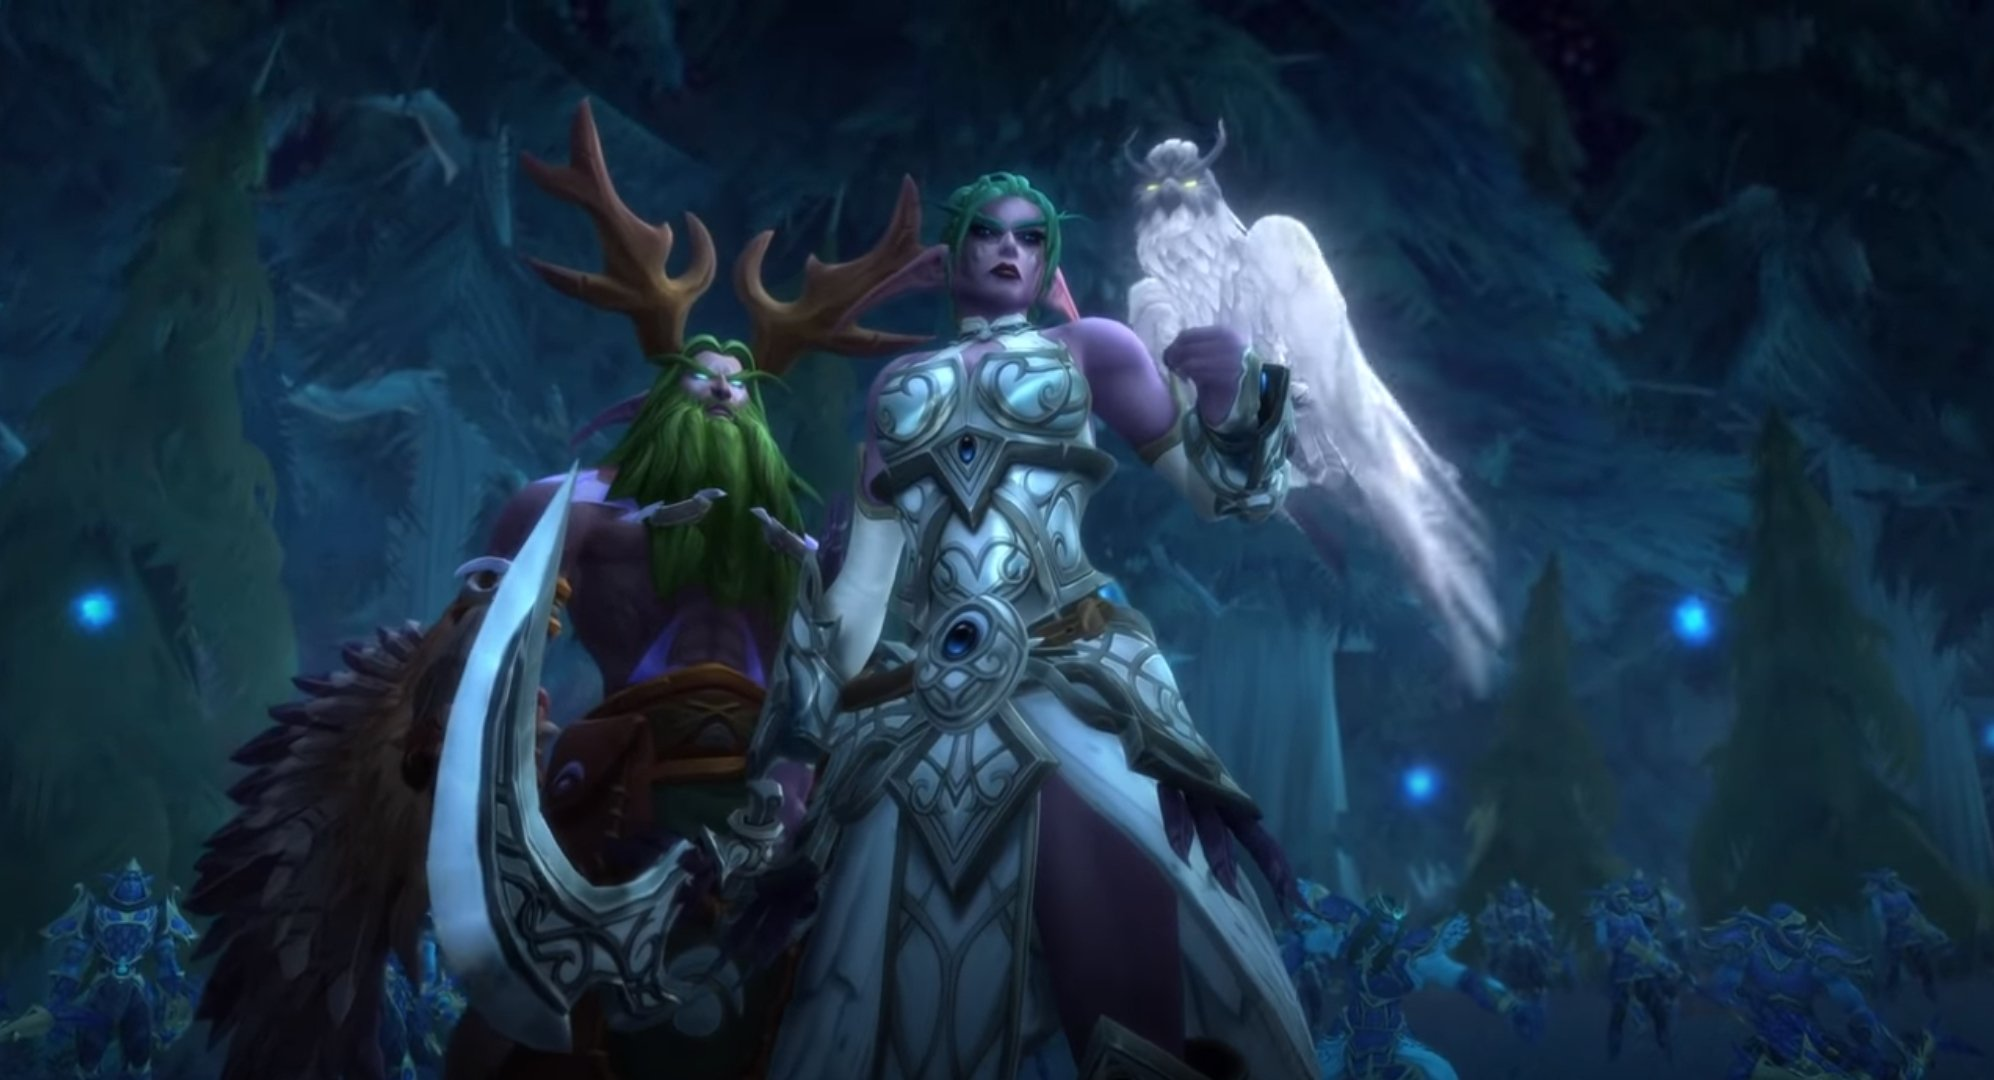 Blizzard Seems To Be Teasing A Return Of World Of Warcraft's Destroyed Night Elf Home, Teldrassil